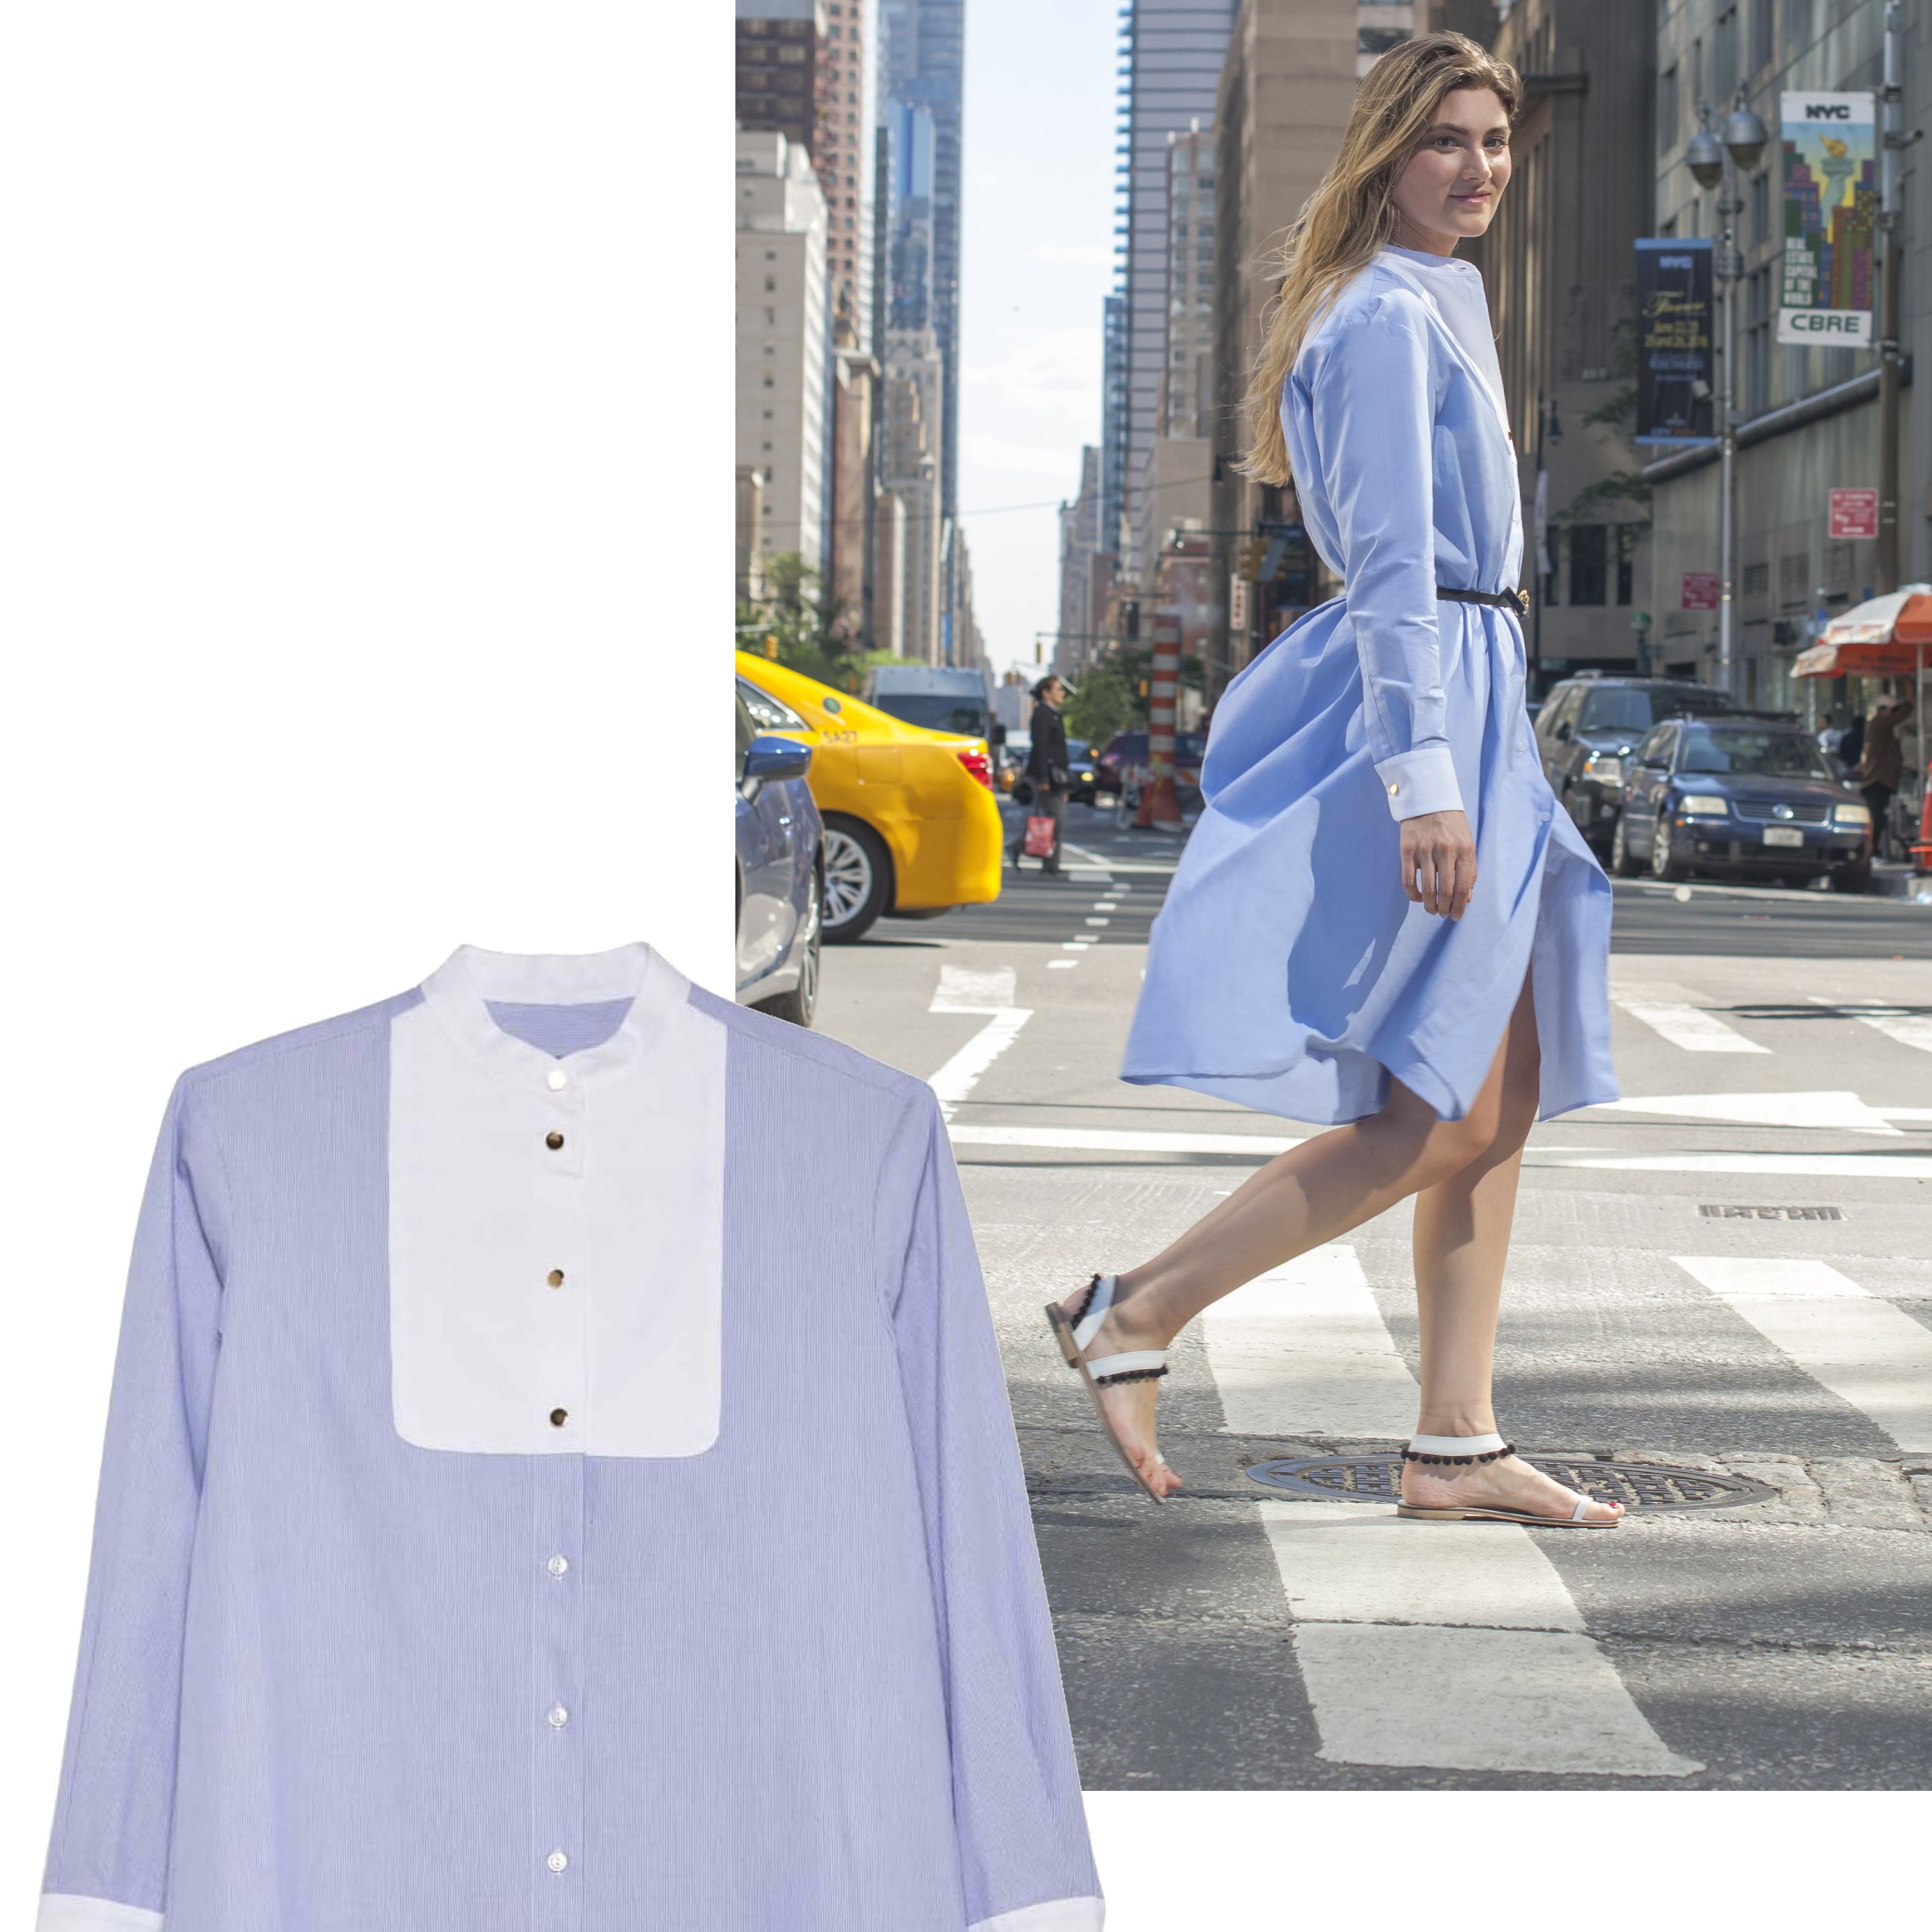 "<p><em><strong>Macgraw</strong> shirt dress, $425, <strong><a href=""https://shop.harpersbazaar.com/designers/m/macgraw/pony-shirt-dress-9497.html"" target=""_blank"">shopBAZAAR.com</a></strong>. </em></p>"